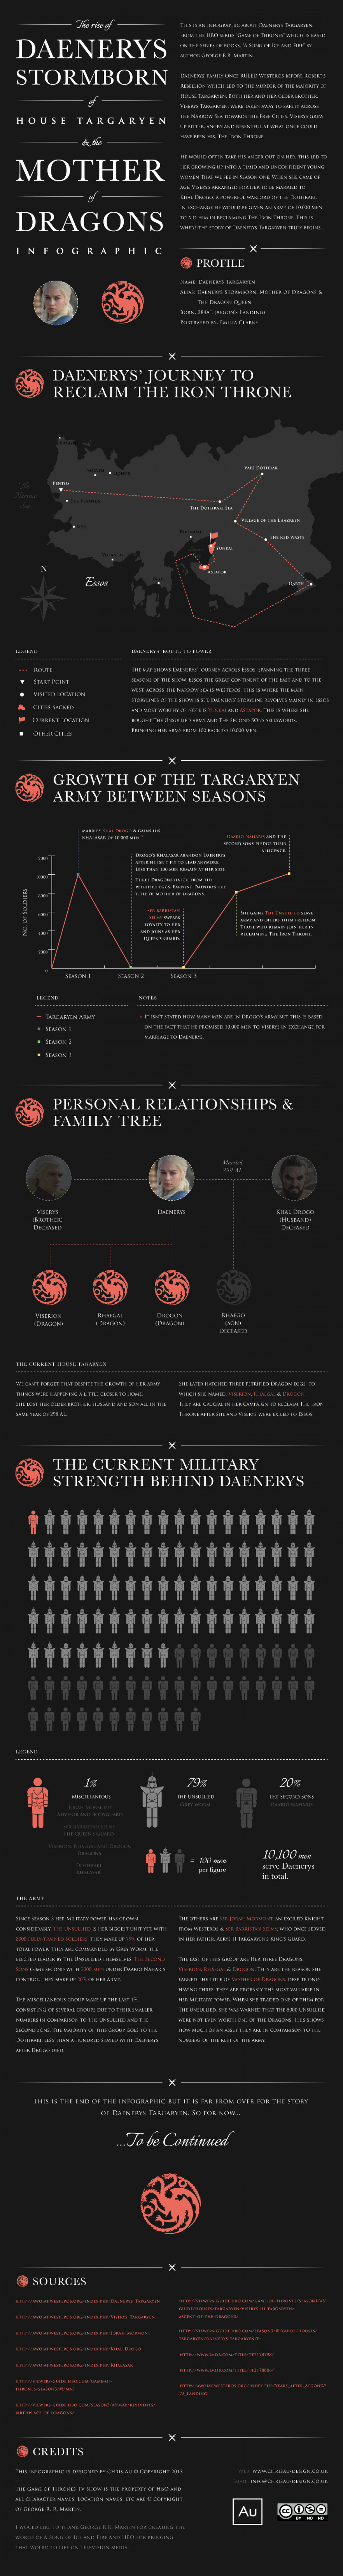 Game of Thrones: Daenerys Targaryen Infographic